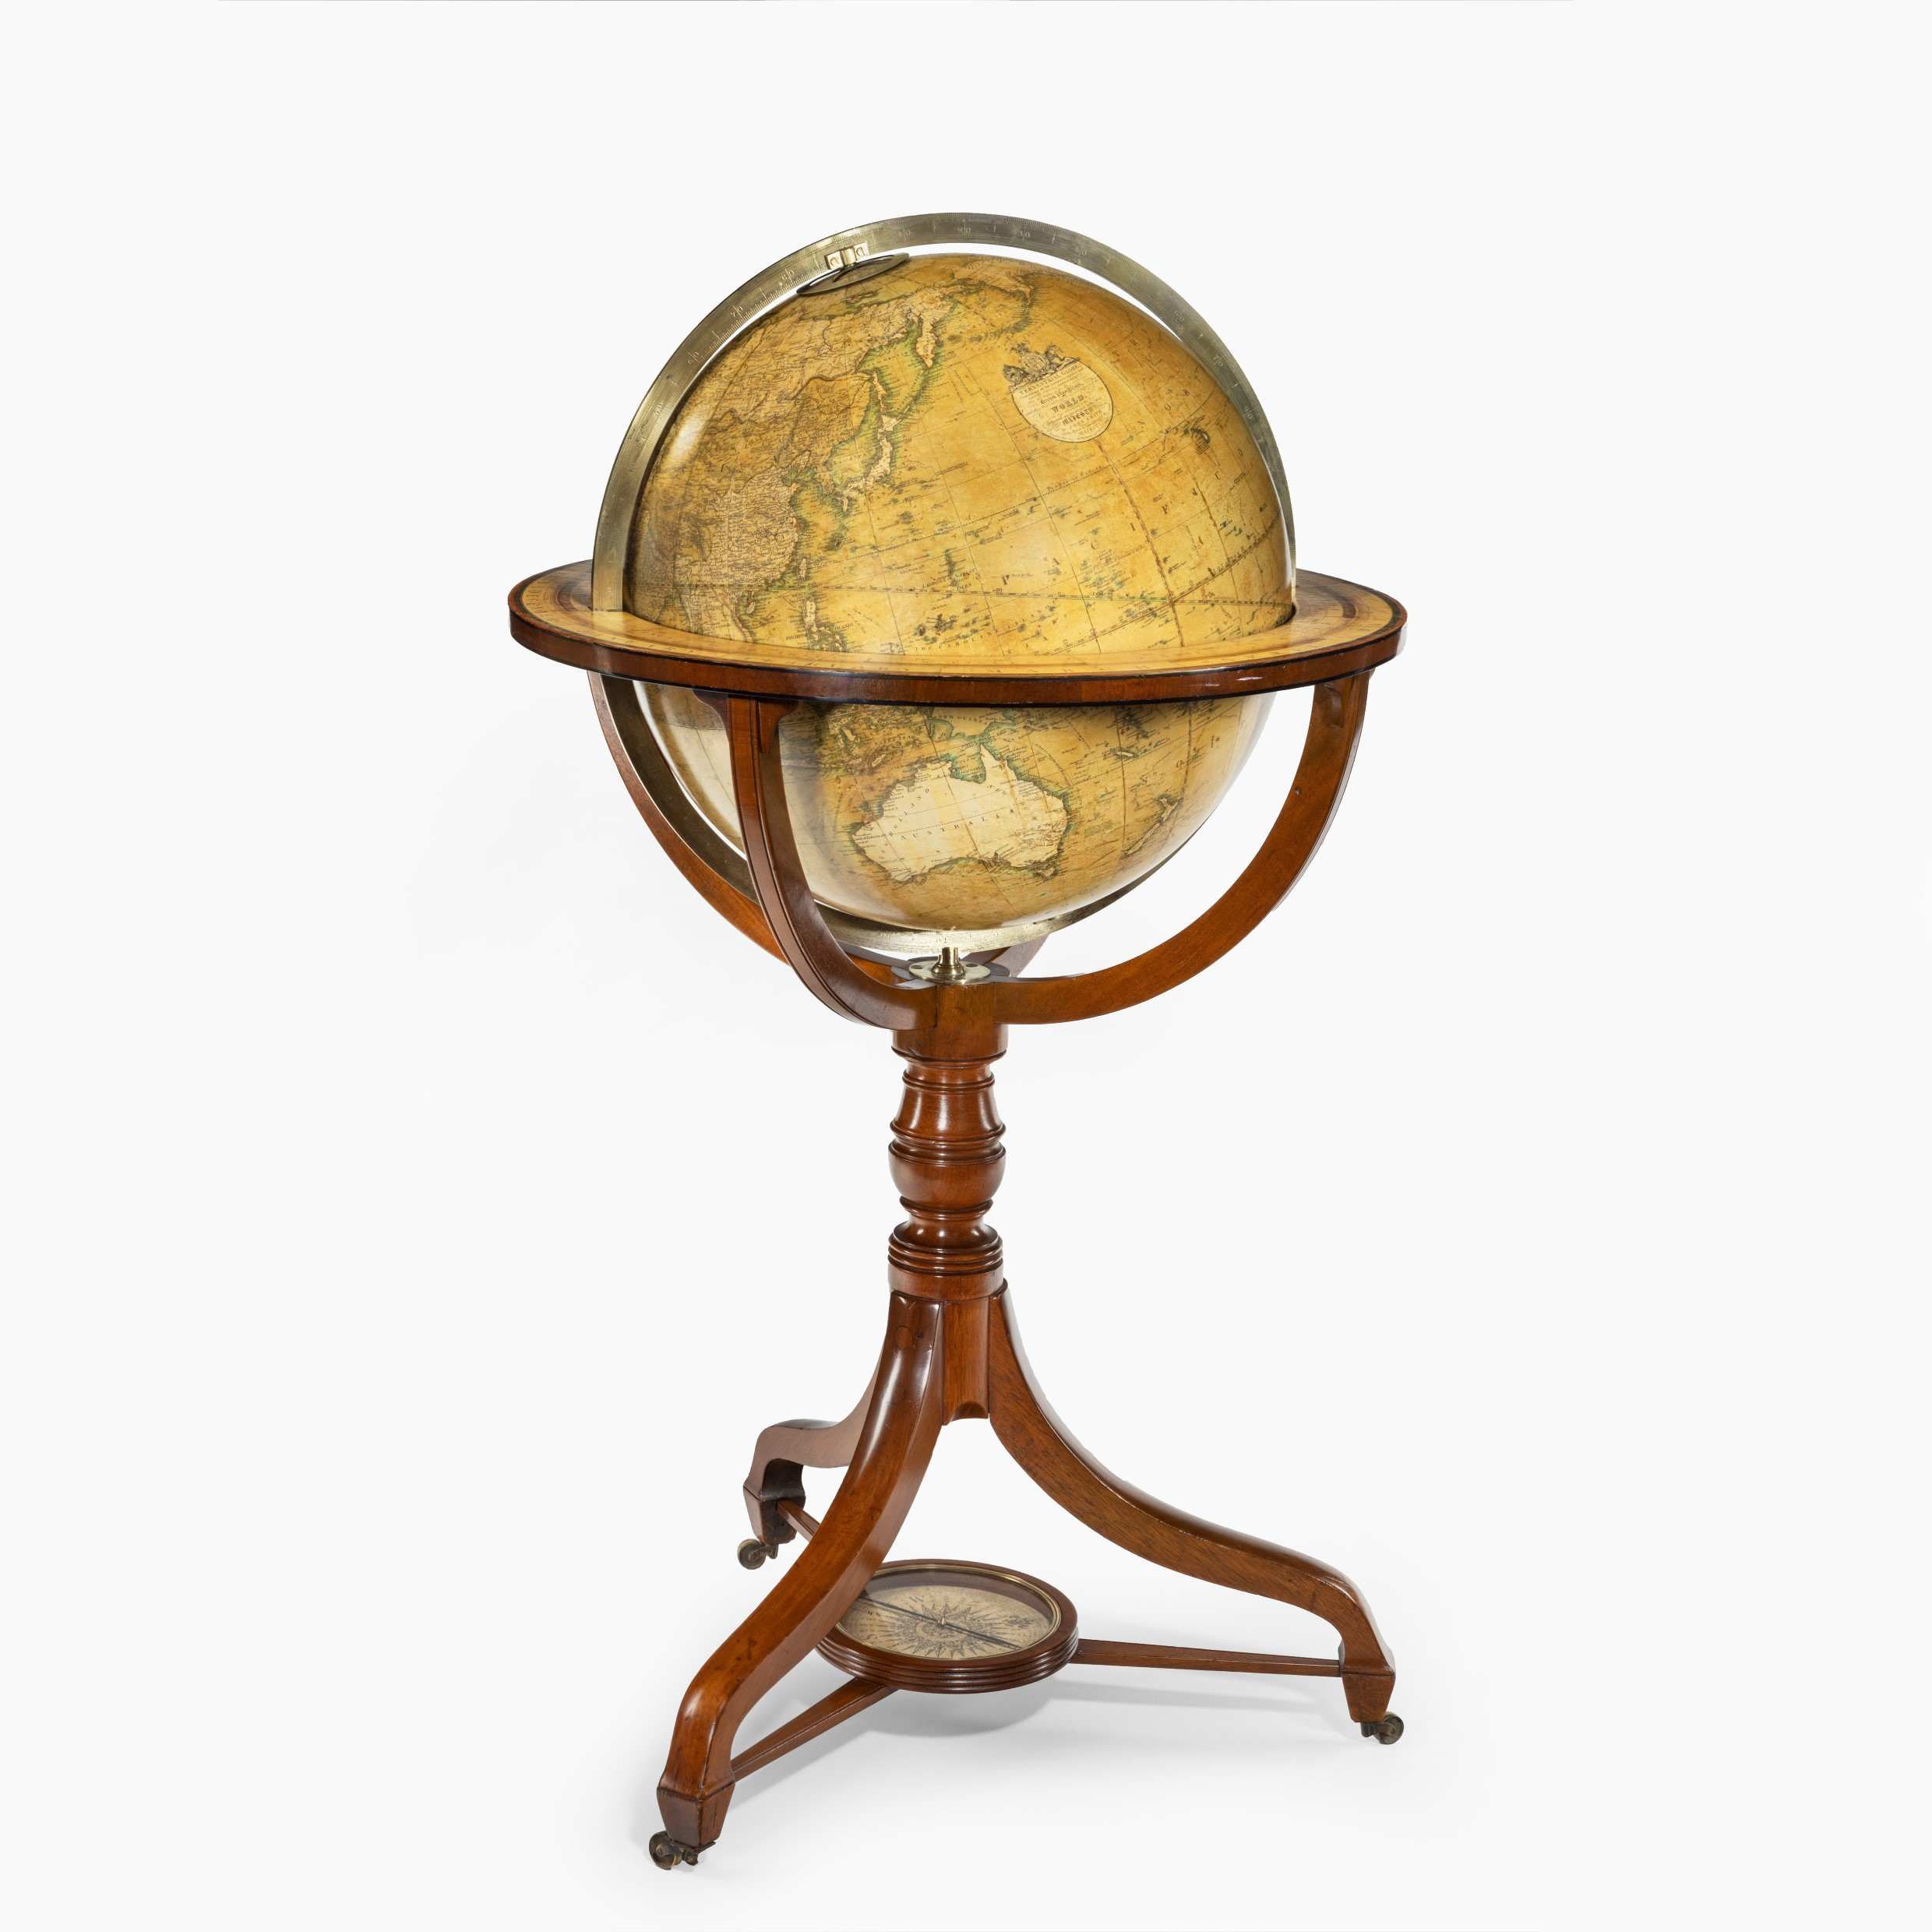 George IV 18-inch floor-standing library globe by John Smith